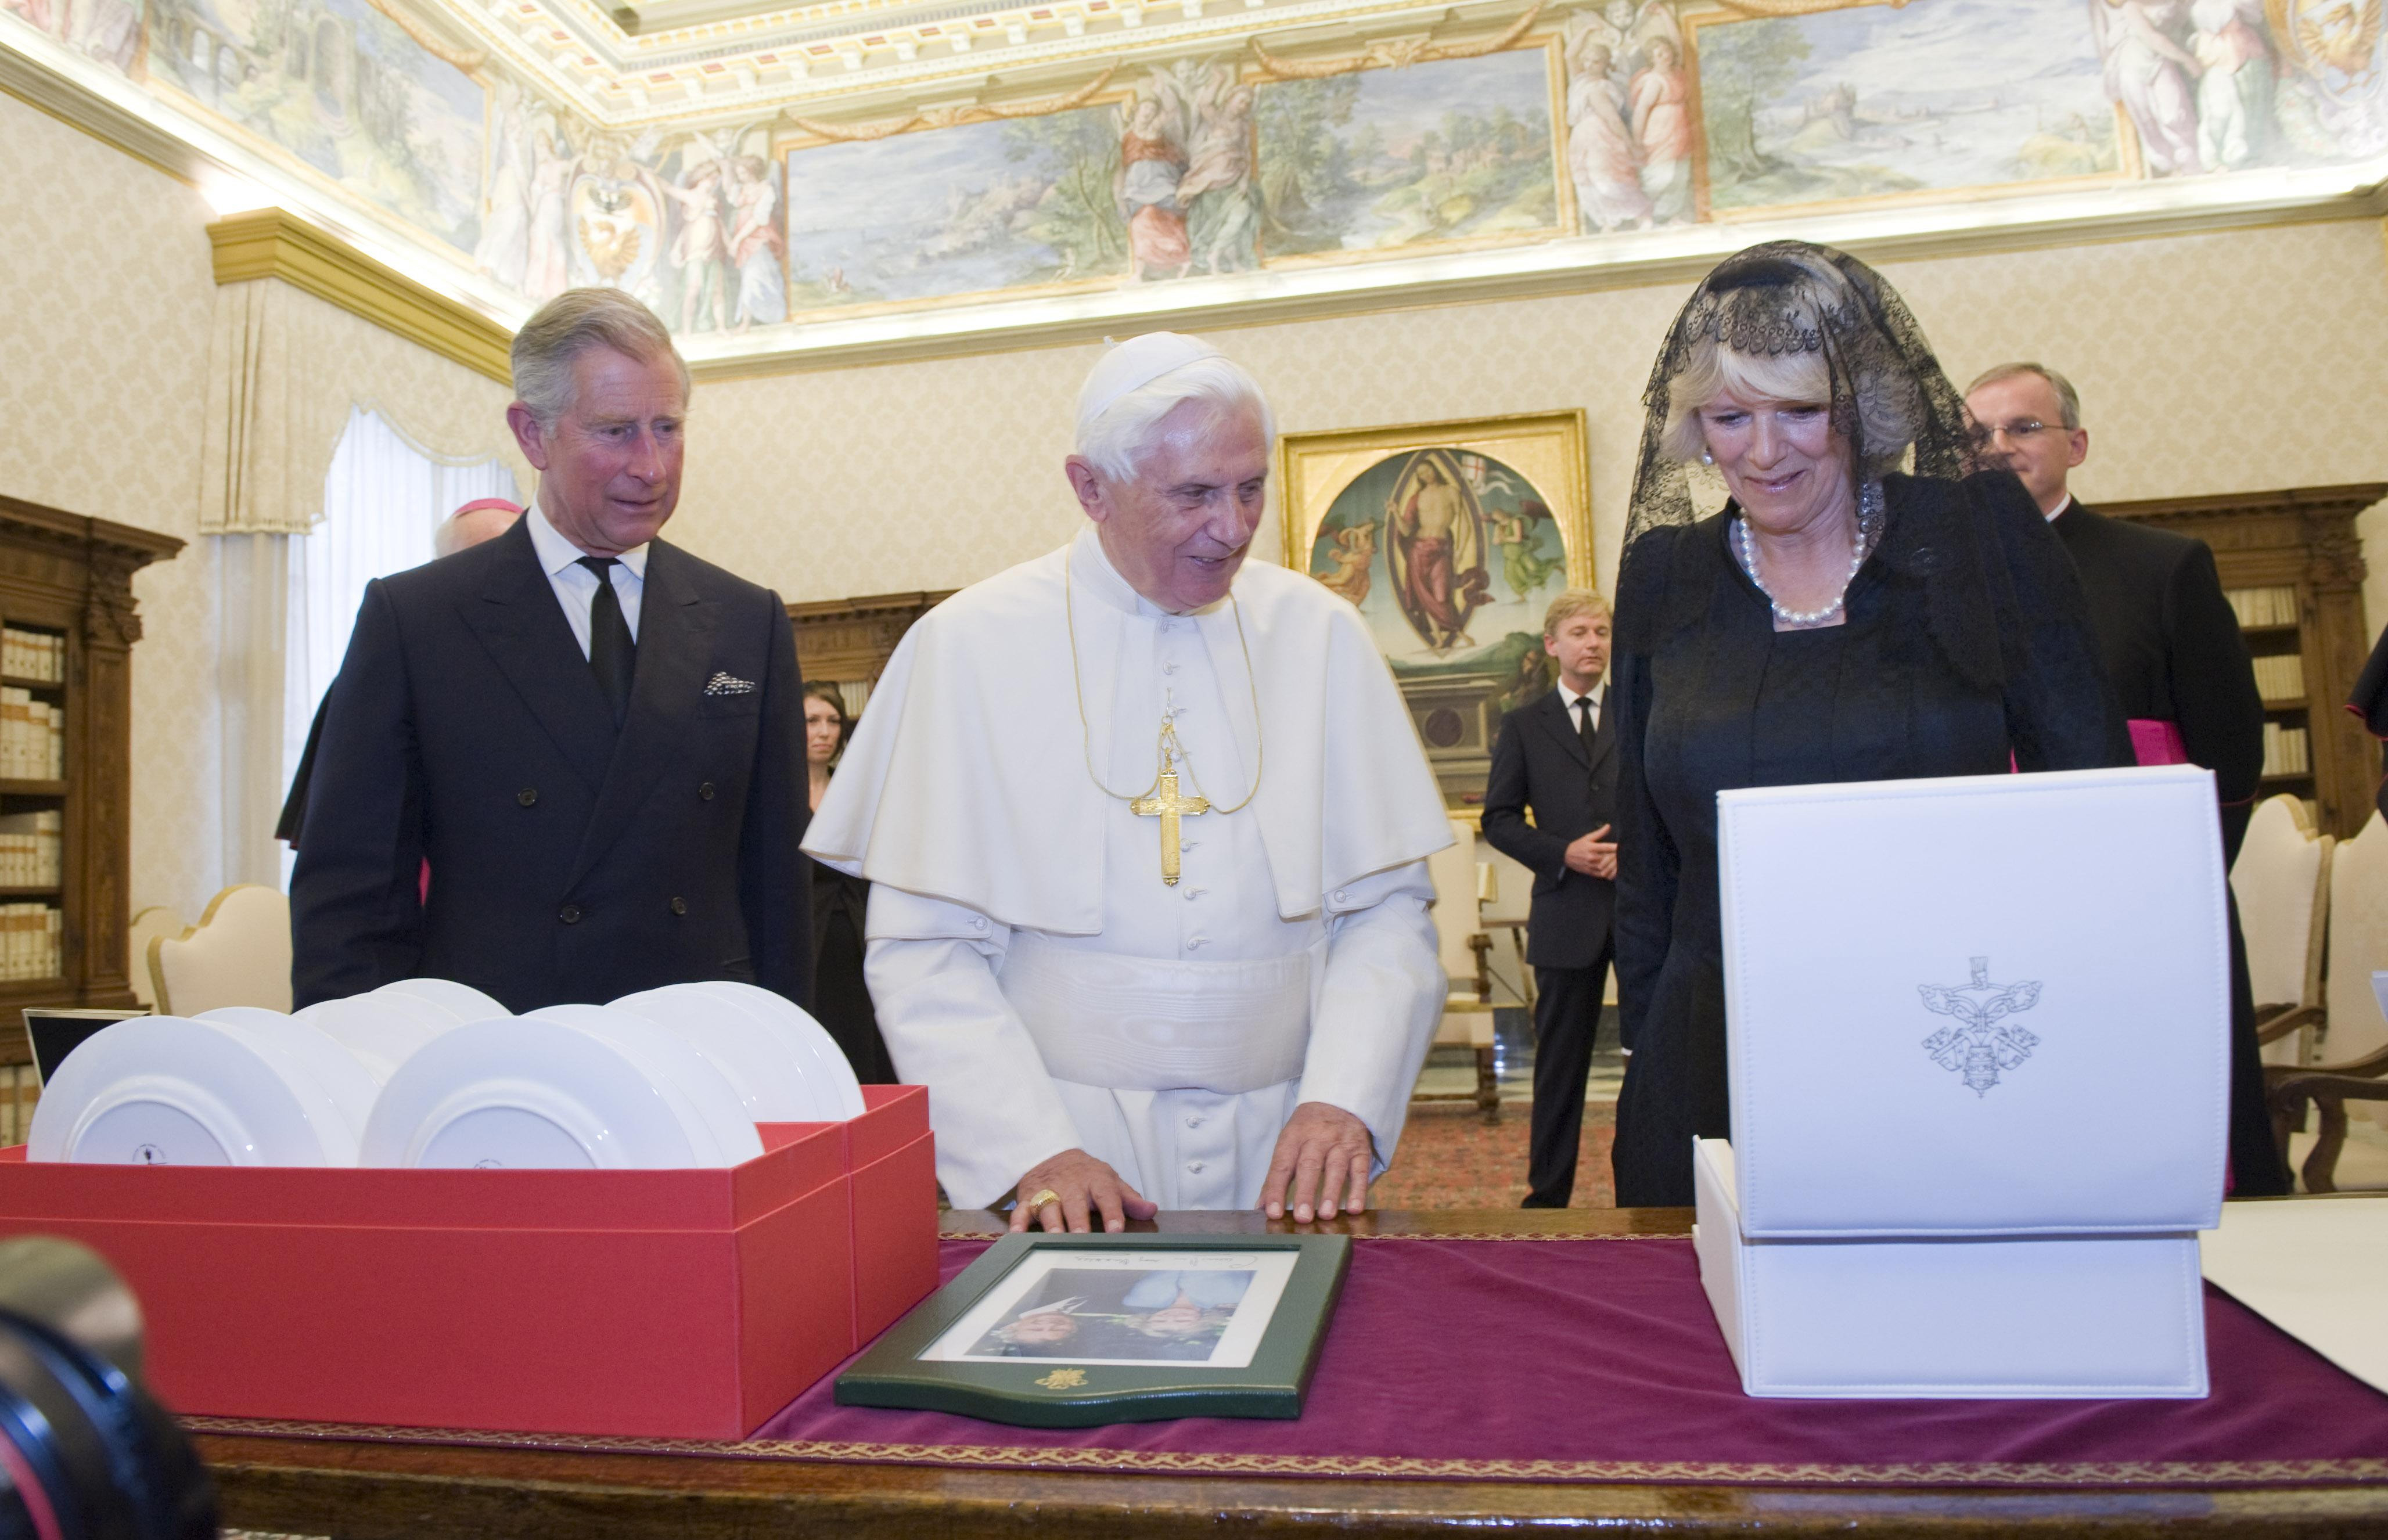 The Prince of Wales and The Duchess of Cornwall meet Pope Benedict XVI in 2009